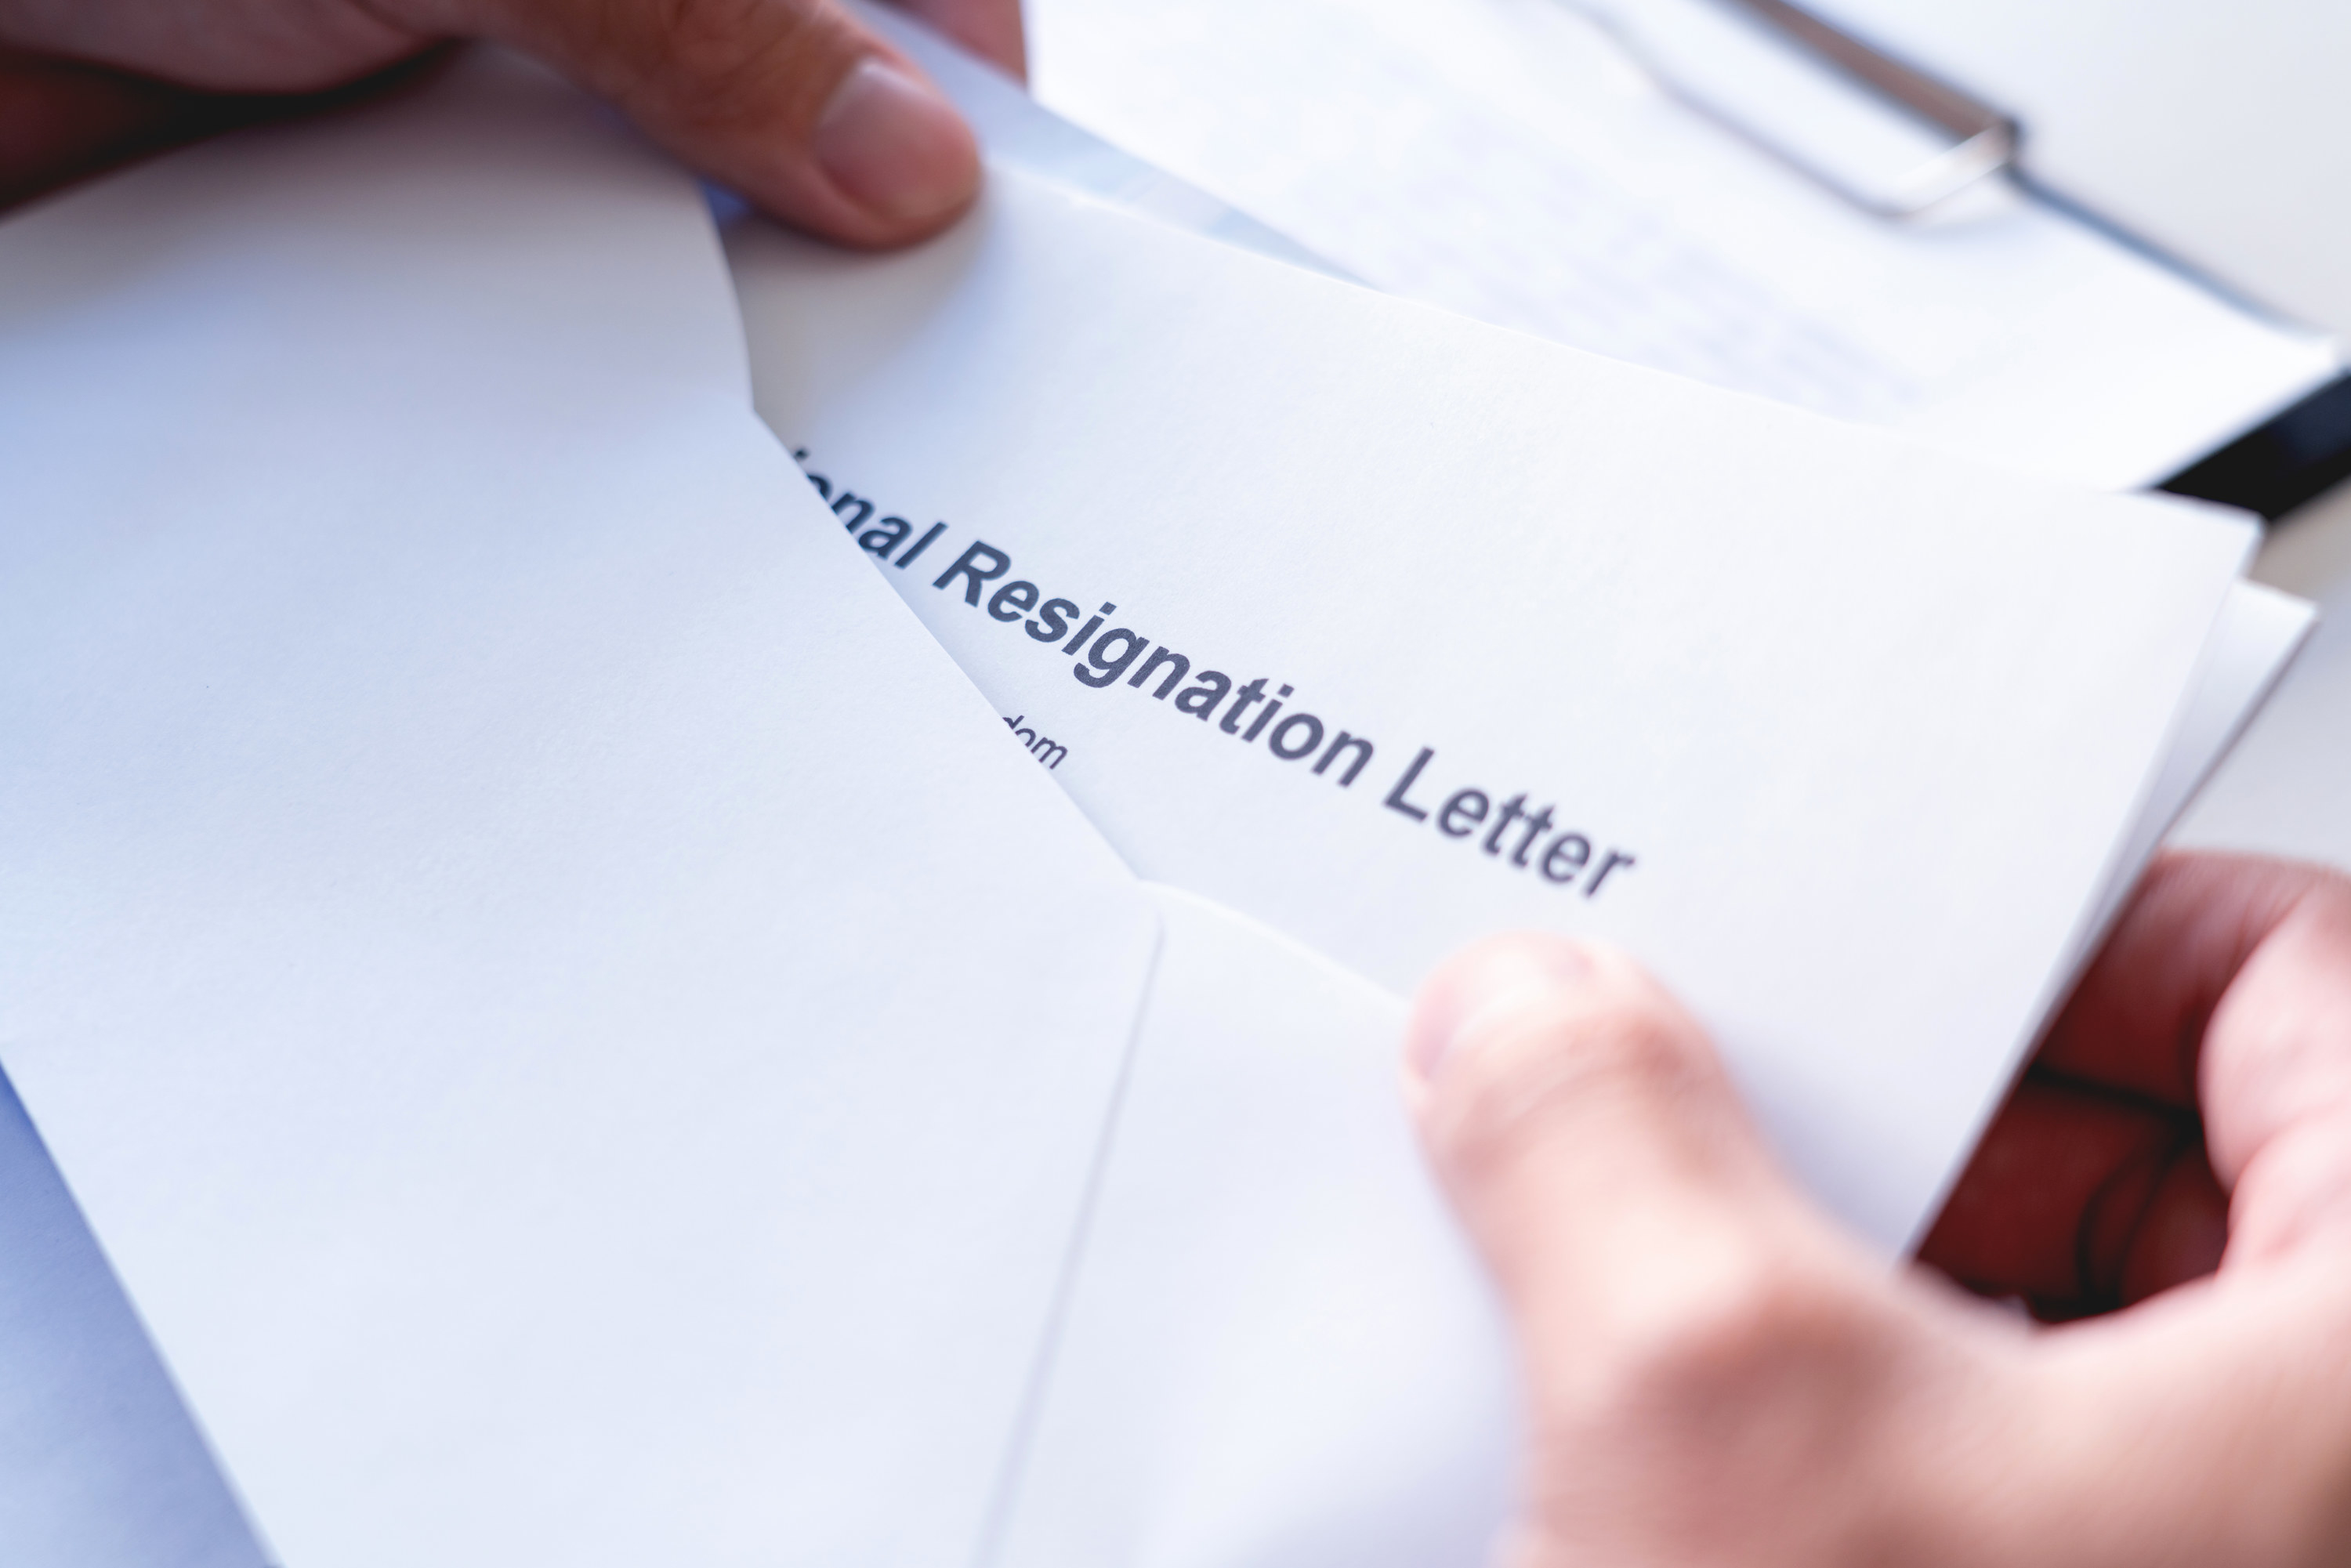 Resignation letter being taken out of an envelope by an employer